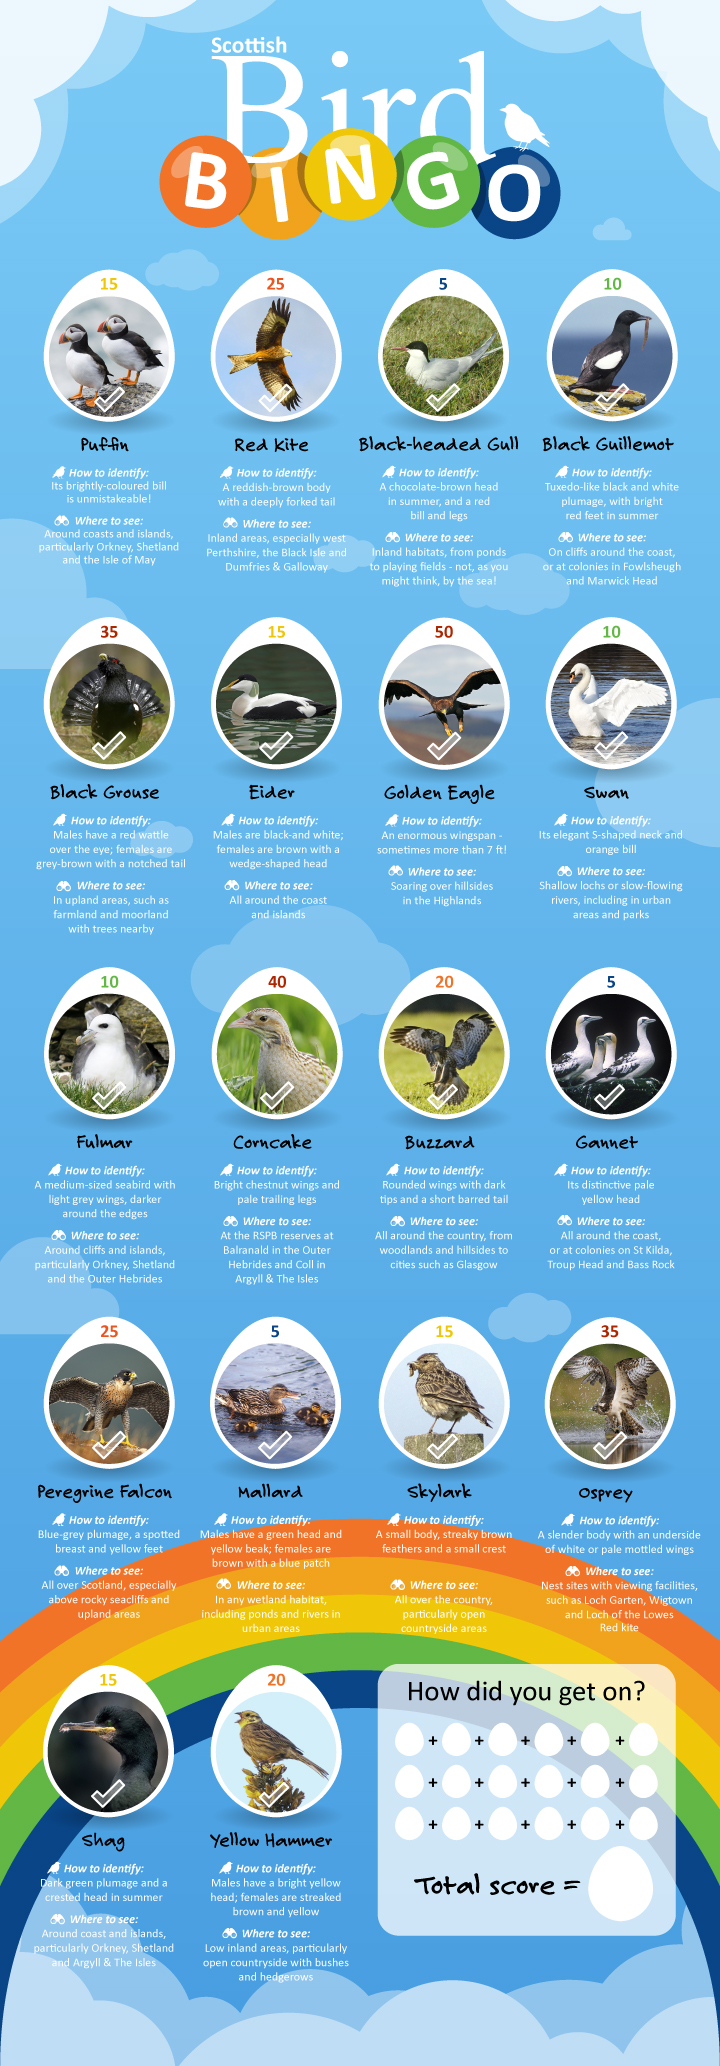 Scottish bird bingo